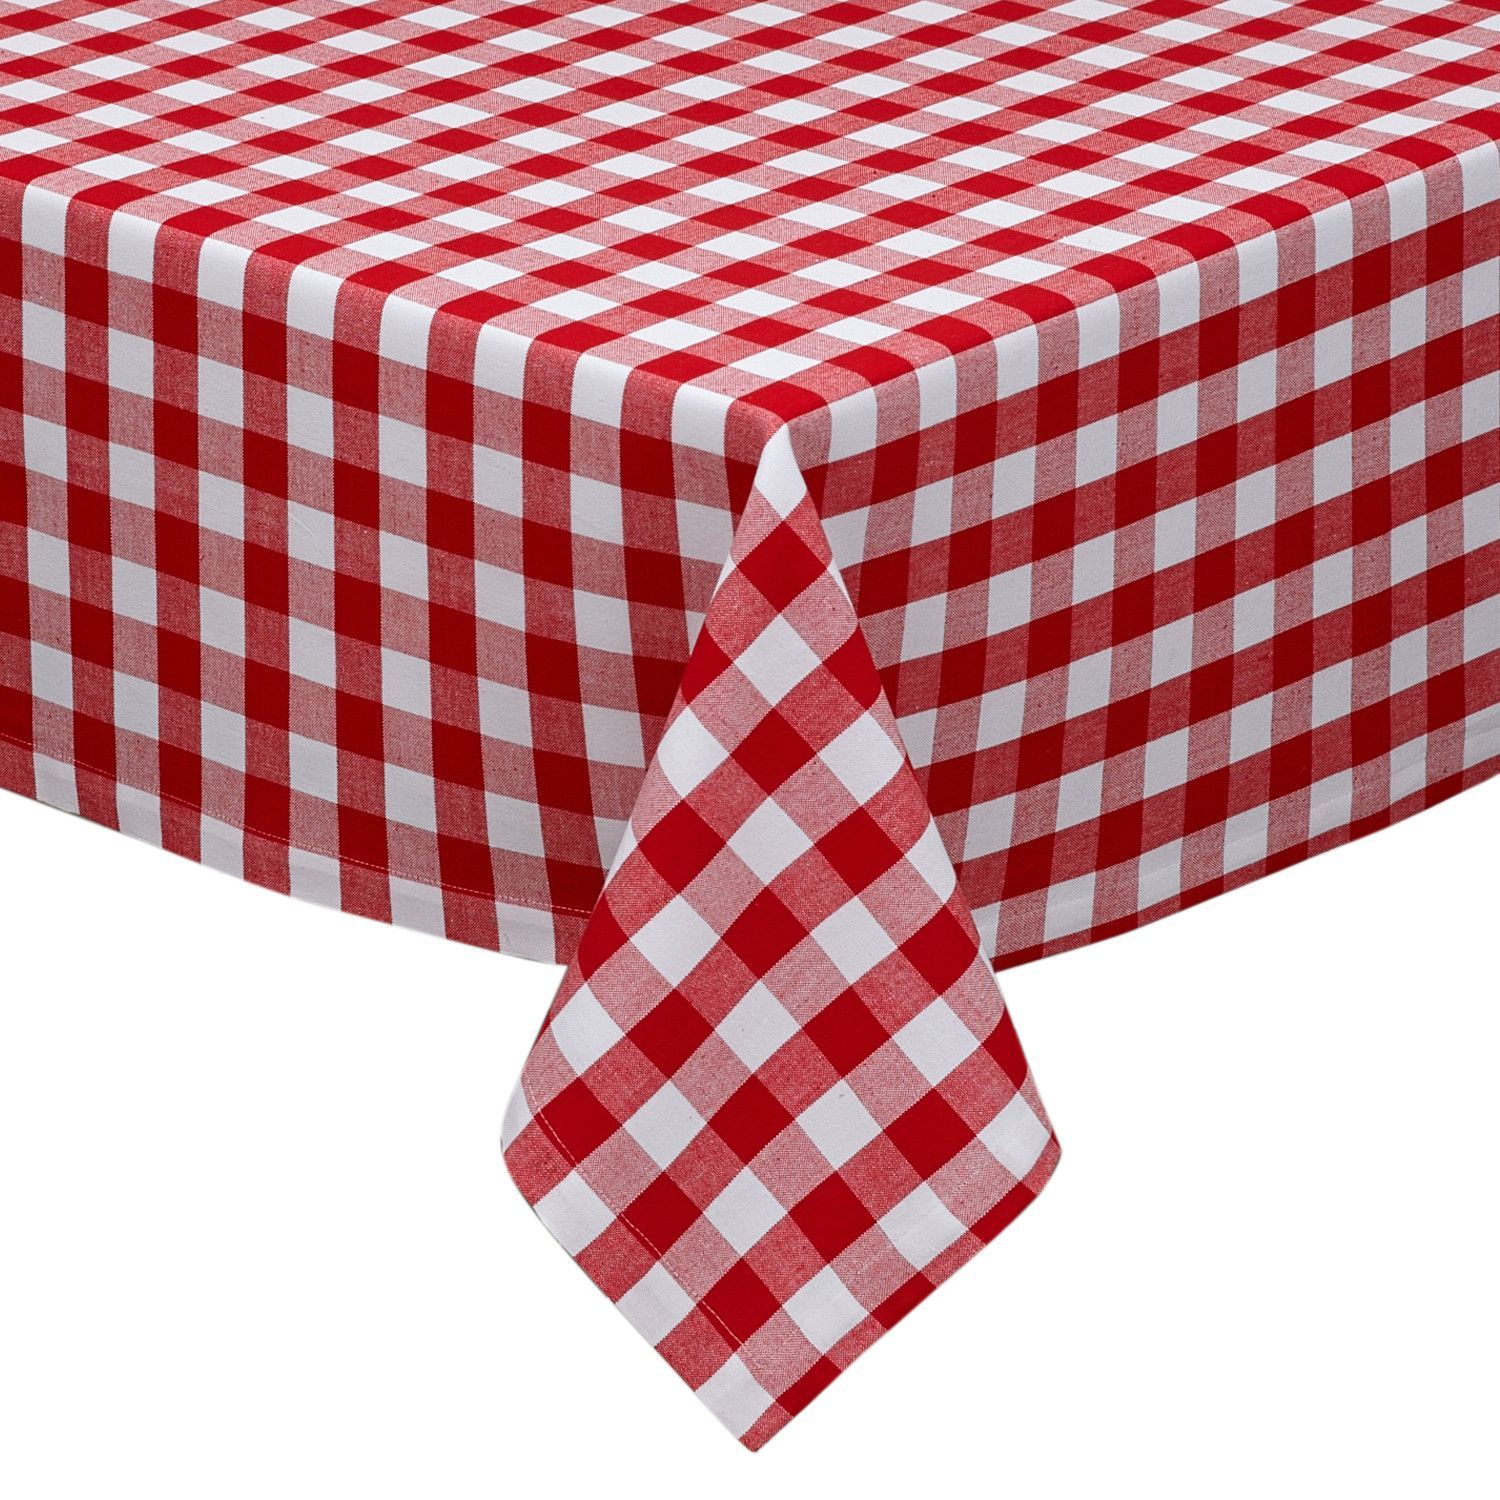 Arkwright Tablecloth With Images Checkered Tablecloth Gingham